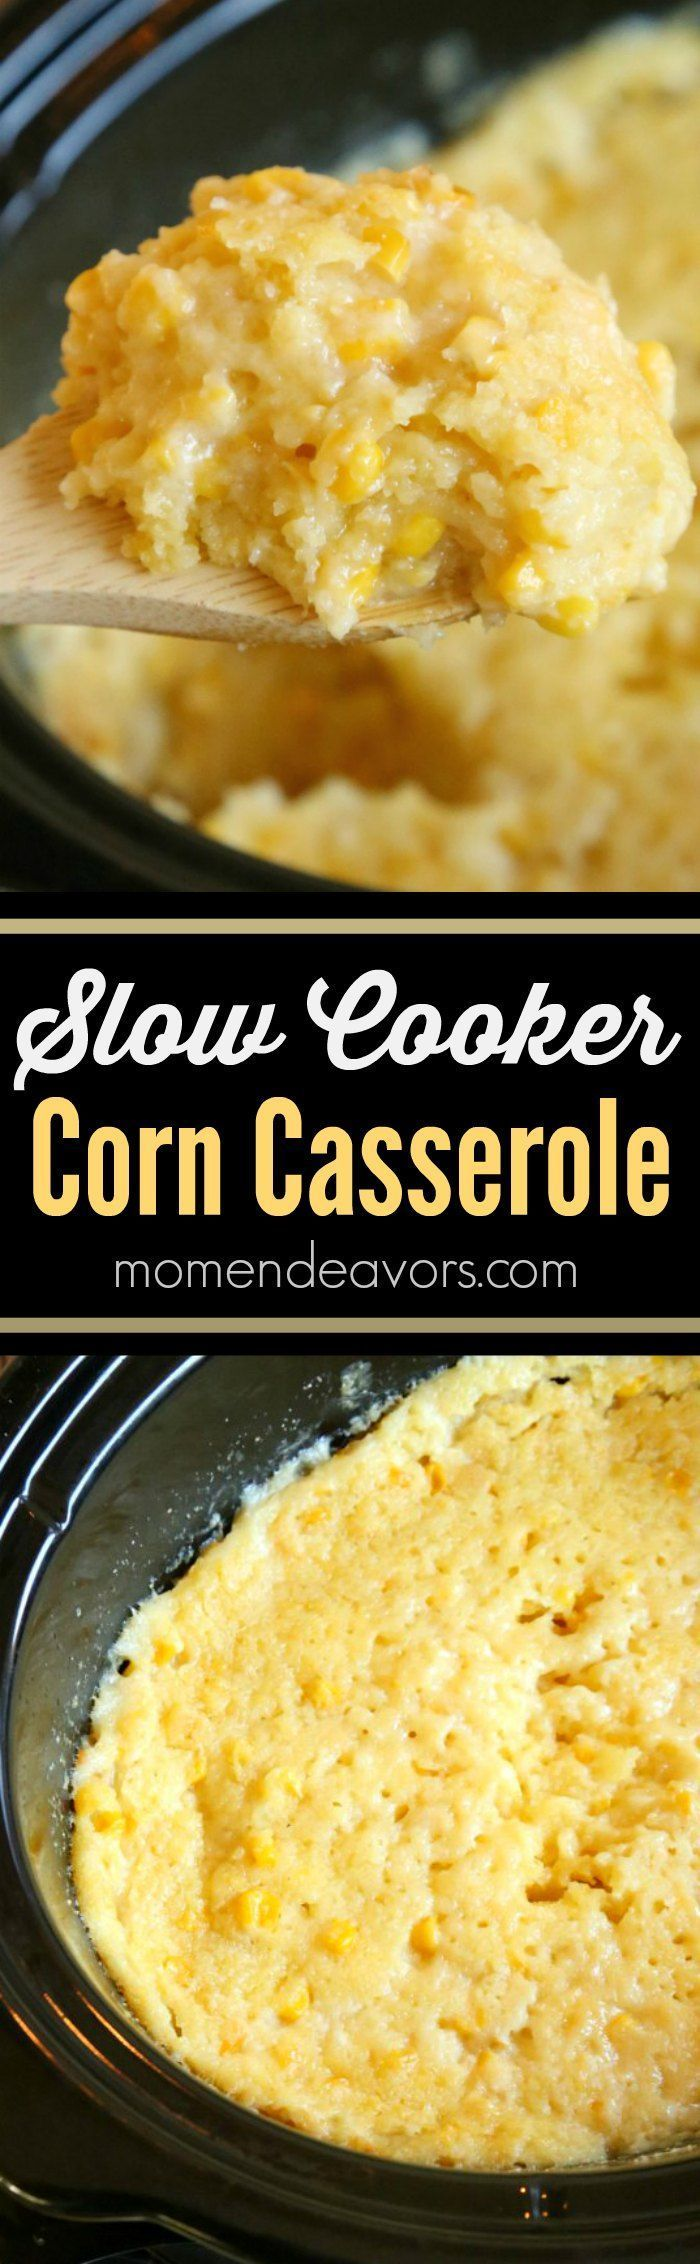 Add the cabbage wedges and bring to a boil, reduce to a simmer and cook uncovered until cabbage is tender, about 10. Slow Cooker Corn Casserole - a delicious, warm comfort ...